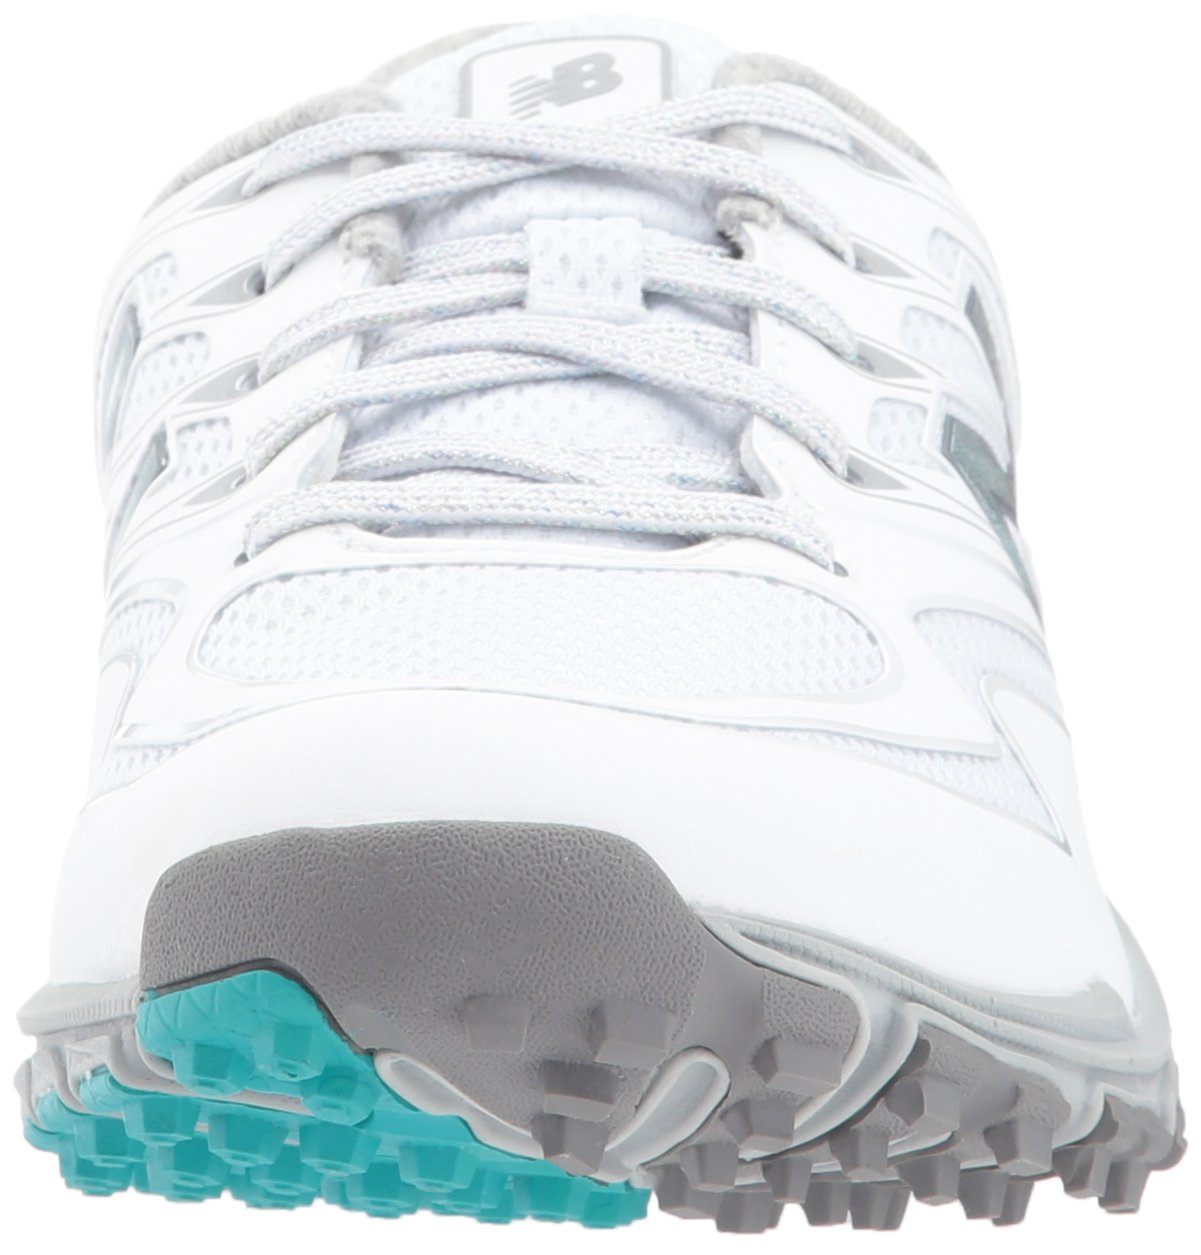 New Balance 6 Women's Minimus Sport Golf Shoe B074L93KRJ 6 Balance B B US|White be9acb